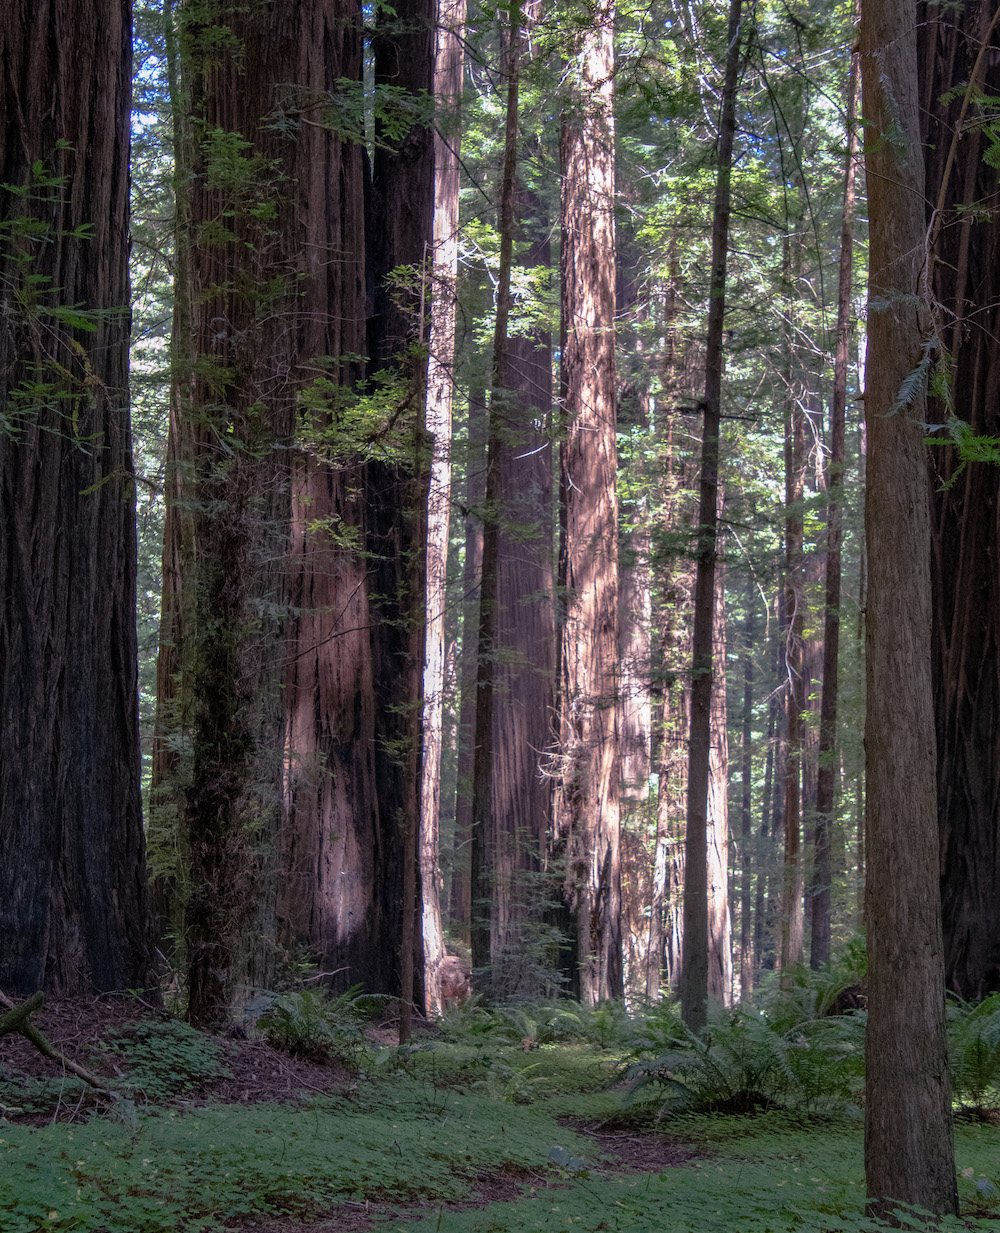 Image for redwood trees in a forest.